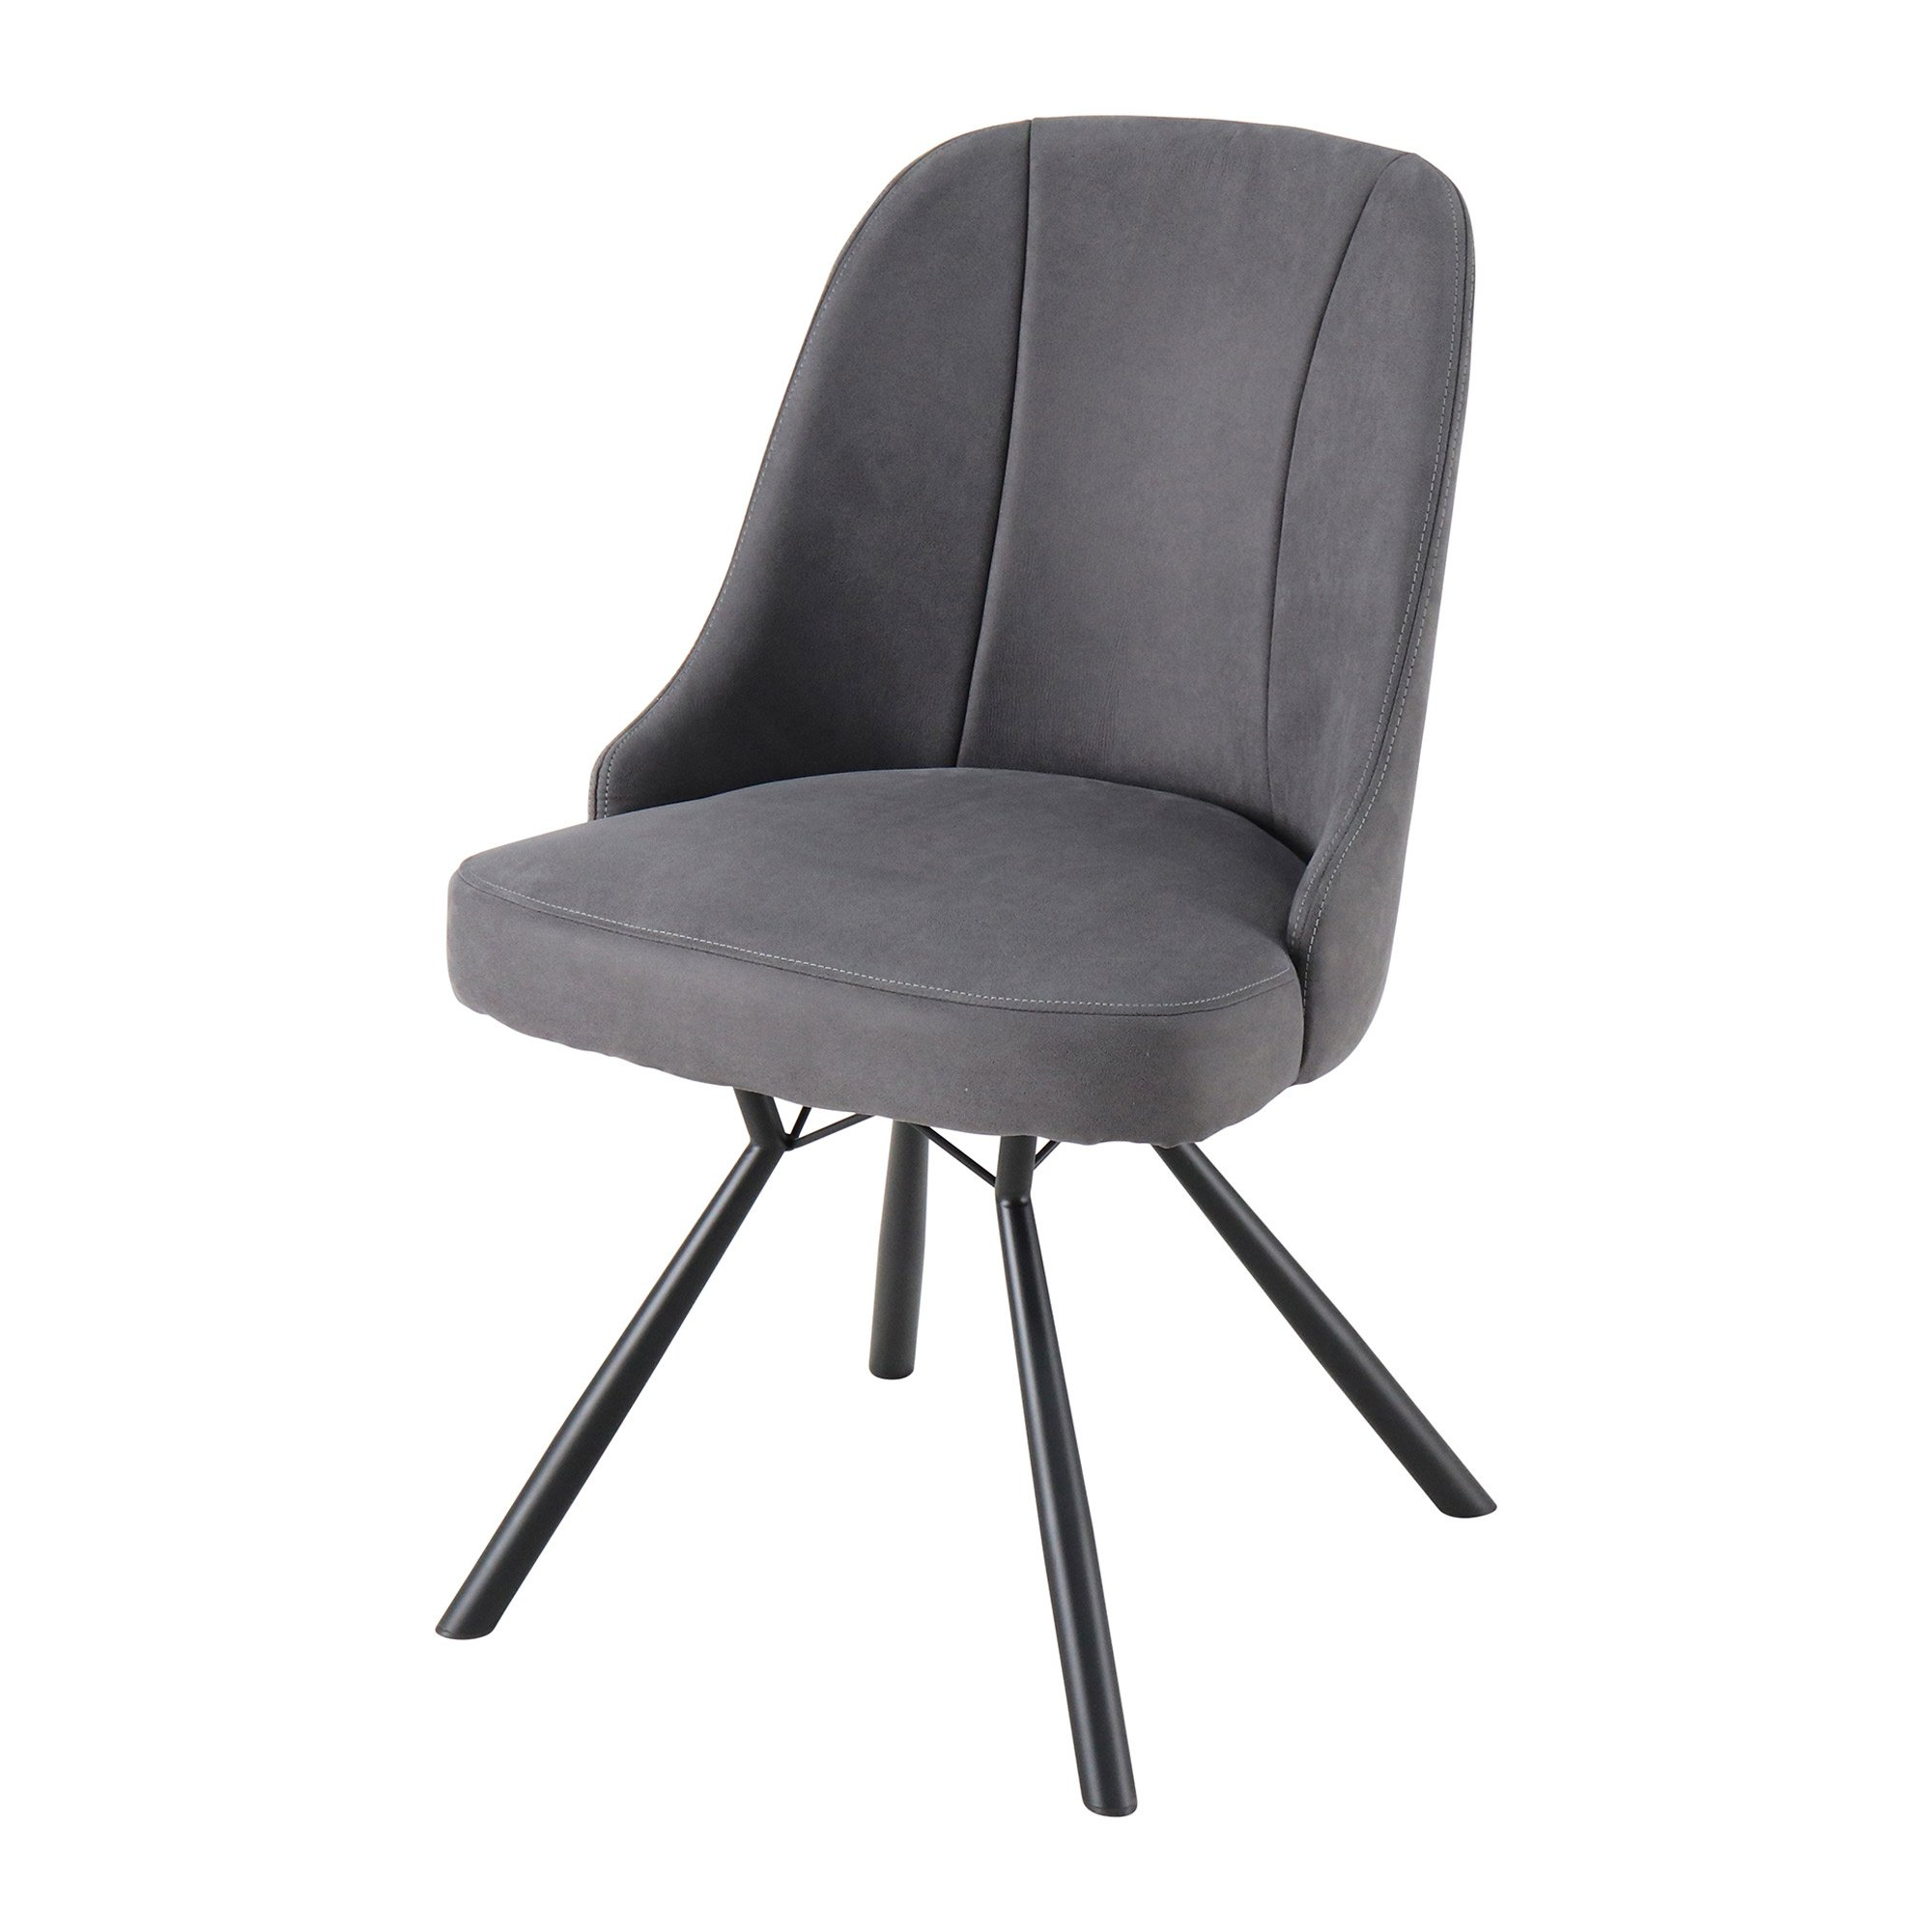 high back comfy gray fabric upholstered dining chair with metal legs